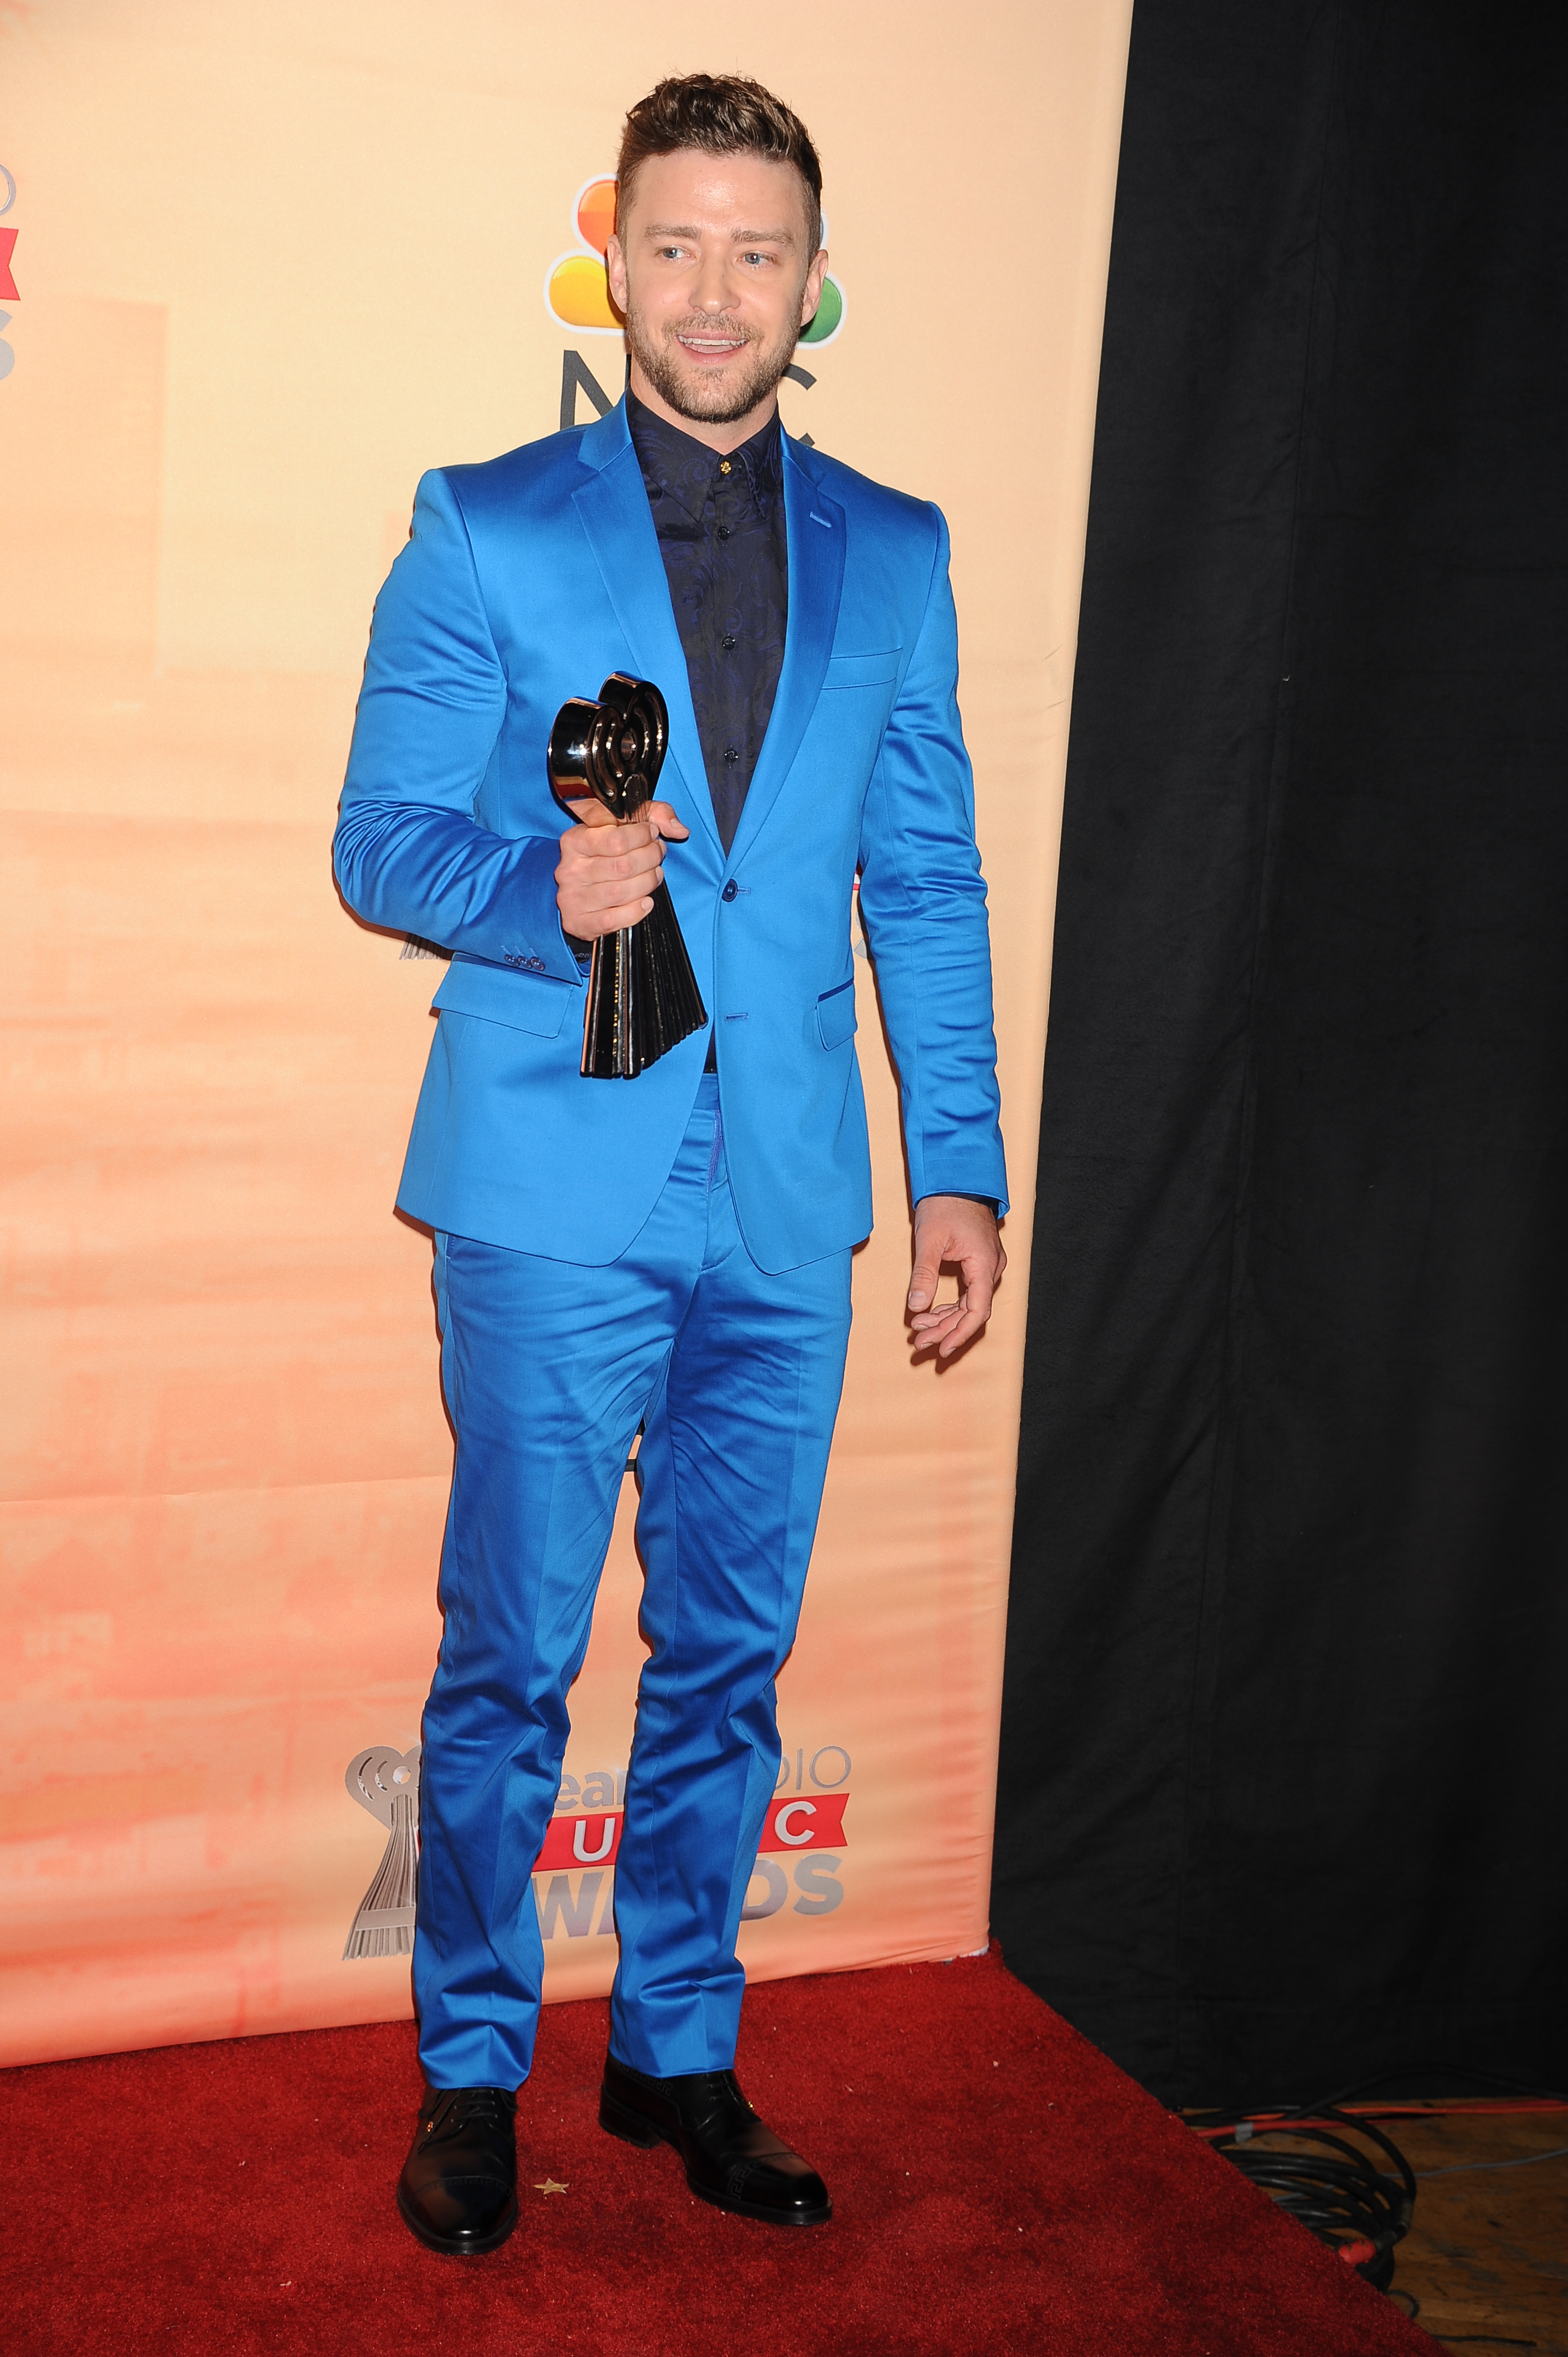 Justin Timberlake arrives at the 2015 iHeartRadio Music Awards held at The Shrine Auditorium in Los Angeles on March 29, 2015.